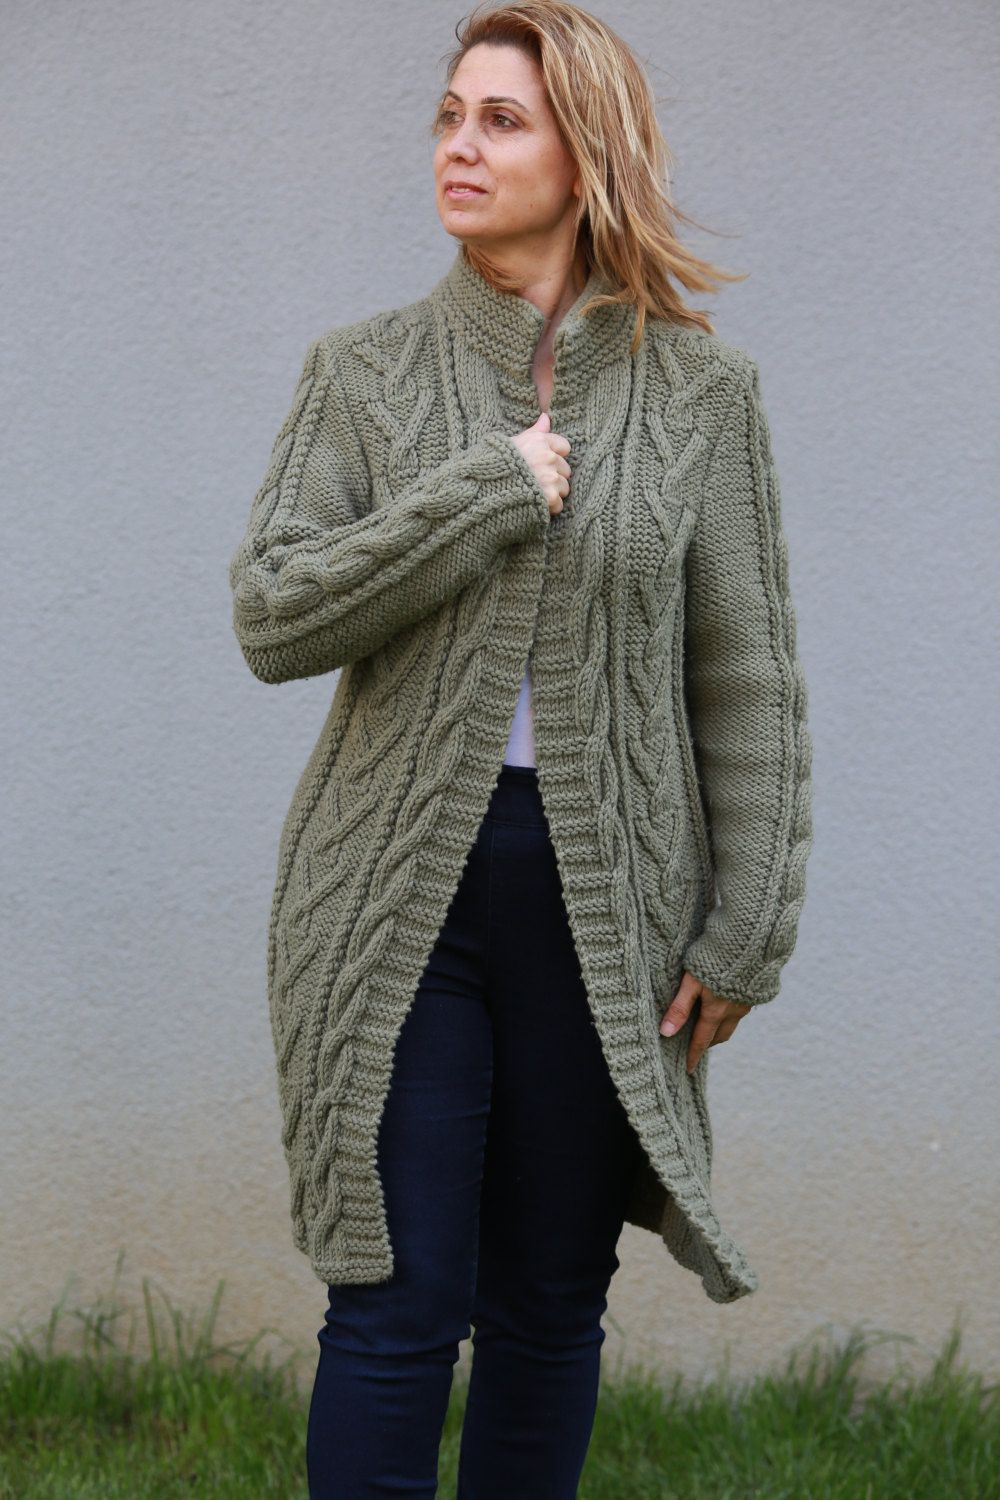 ea1ba47cdcd1e2 Hand knitted Army Green Boyfriend Coat Cardigan Cable Knitted Long Overcoat  Tunic for Winter and Spring Made to Order Outwear or Outerwear knitted  items ...